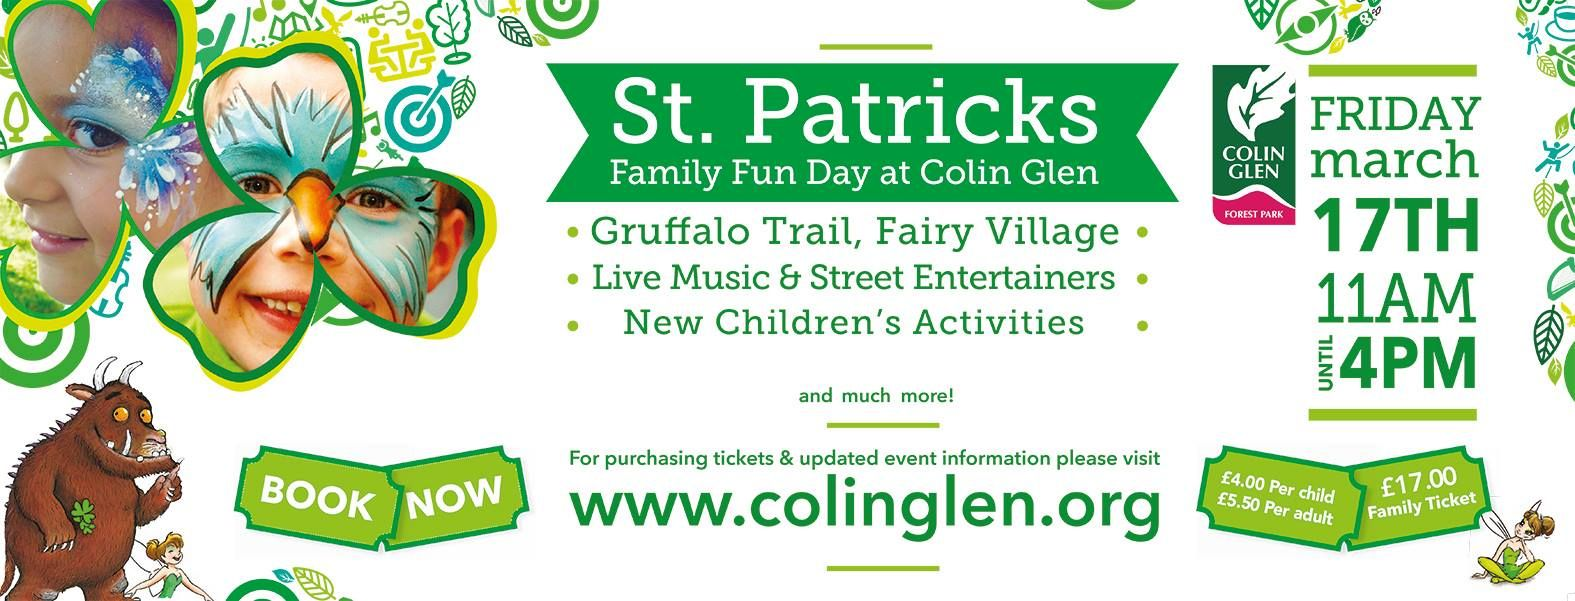 Colin Glen Forest Park are hosting a Family Fun Day on